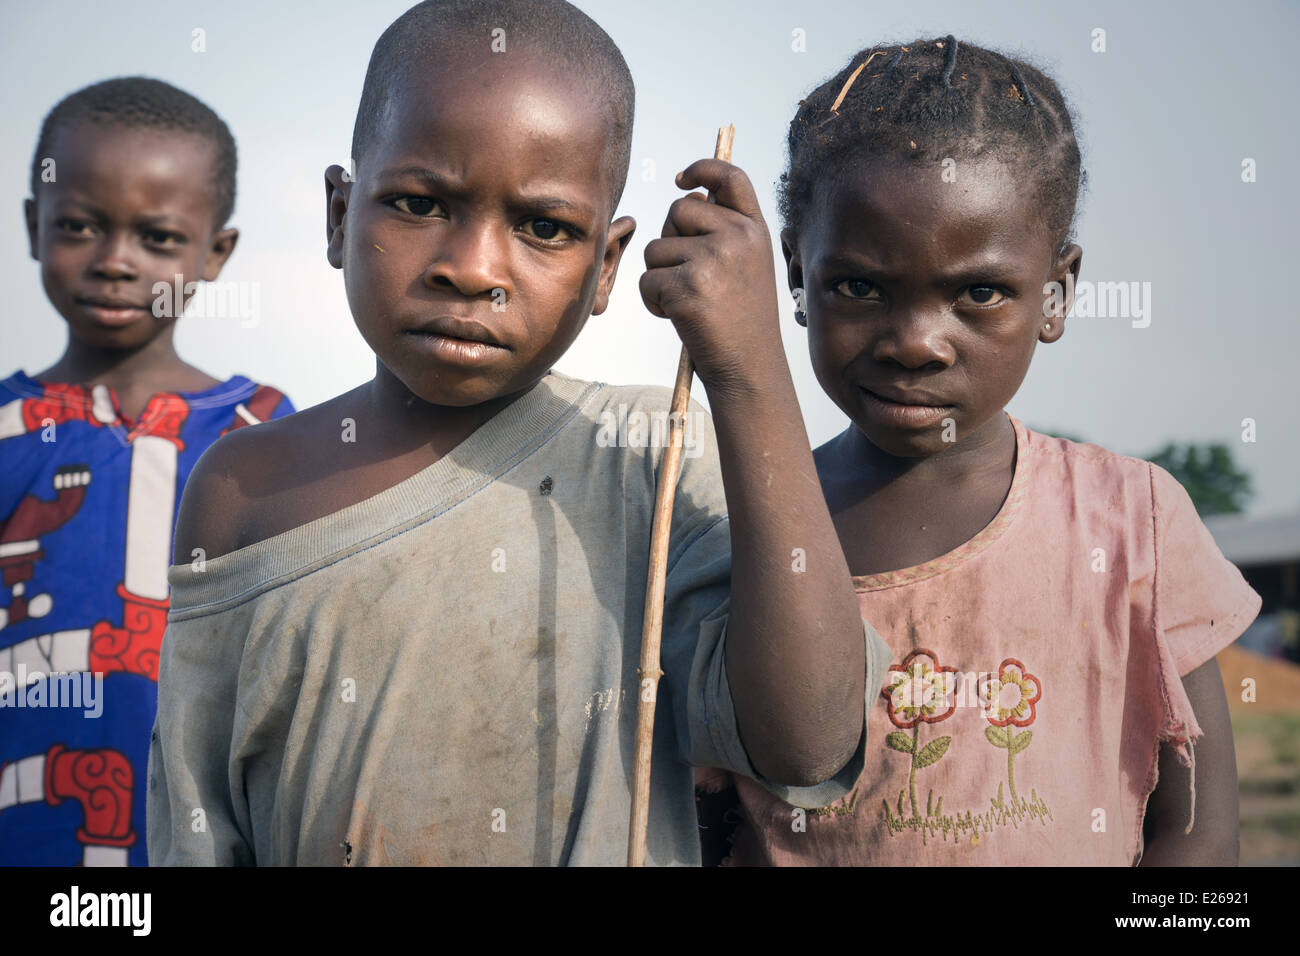 Central African Republic Refugee children in Boyabu refugee camp in Democratic Republic of Congo. - Stock Image